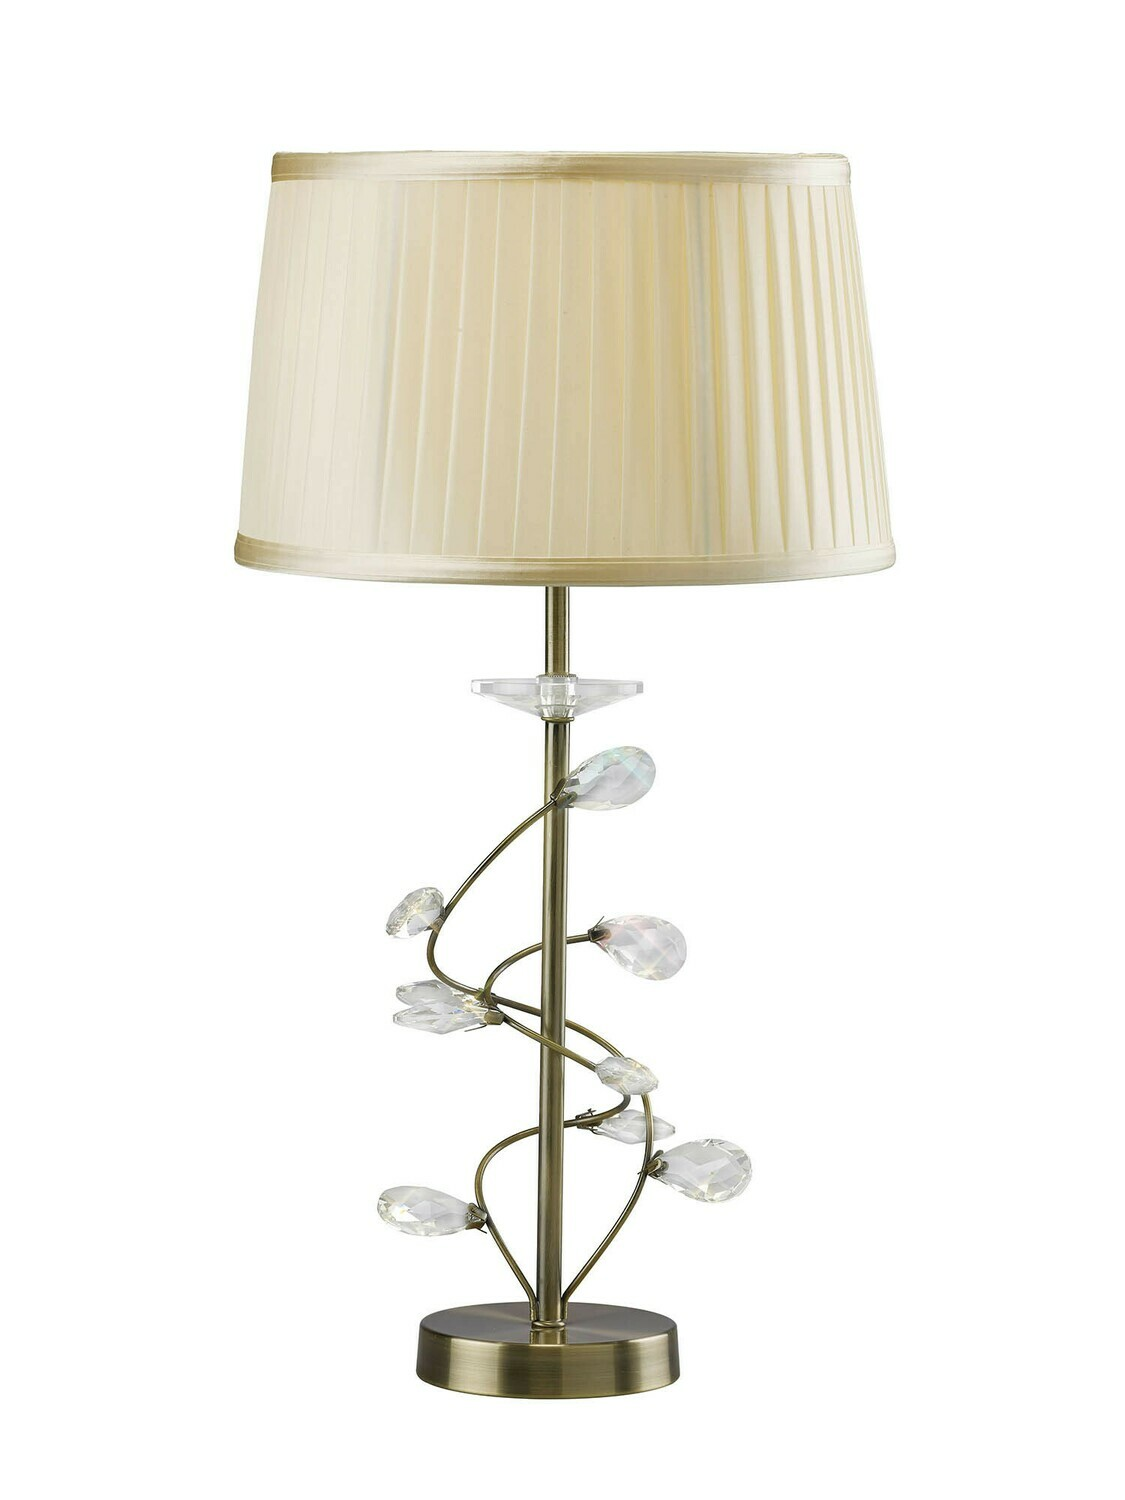 Willow Table Lamp With Cream Shade 1 Light E27 Antique Brass/Crystal